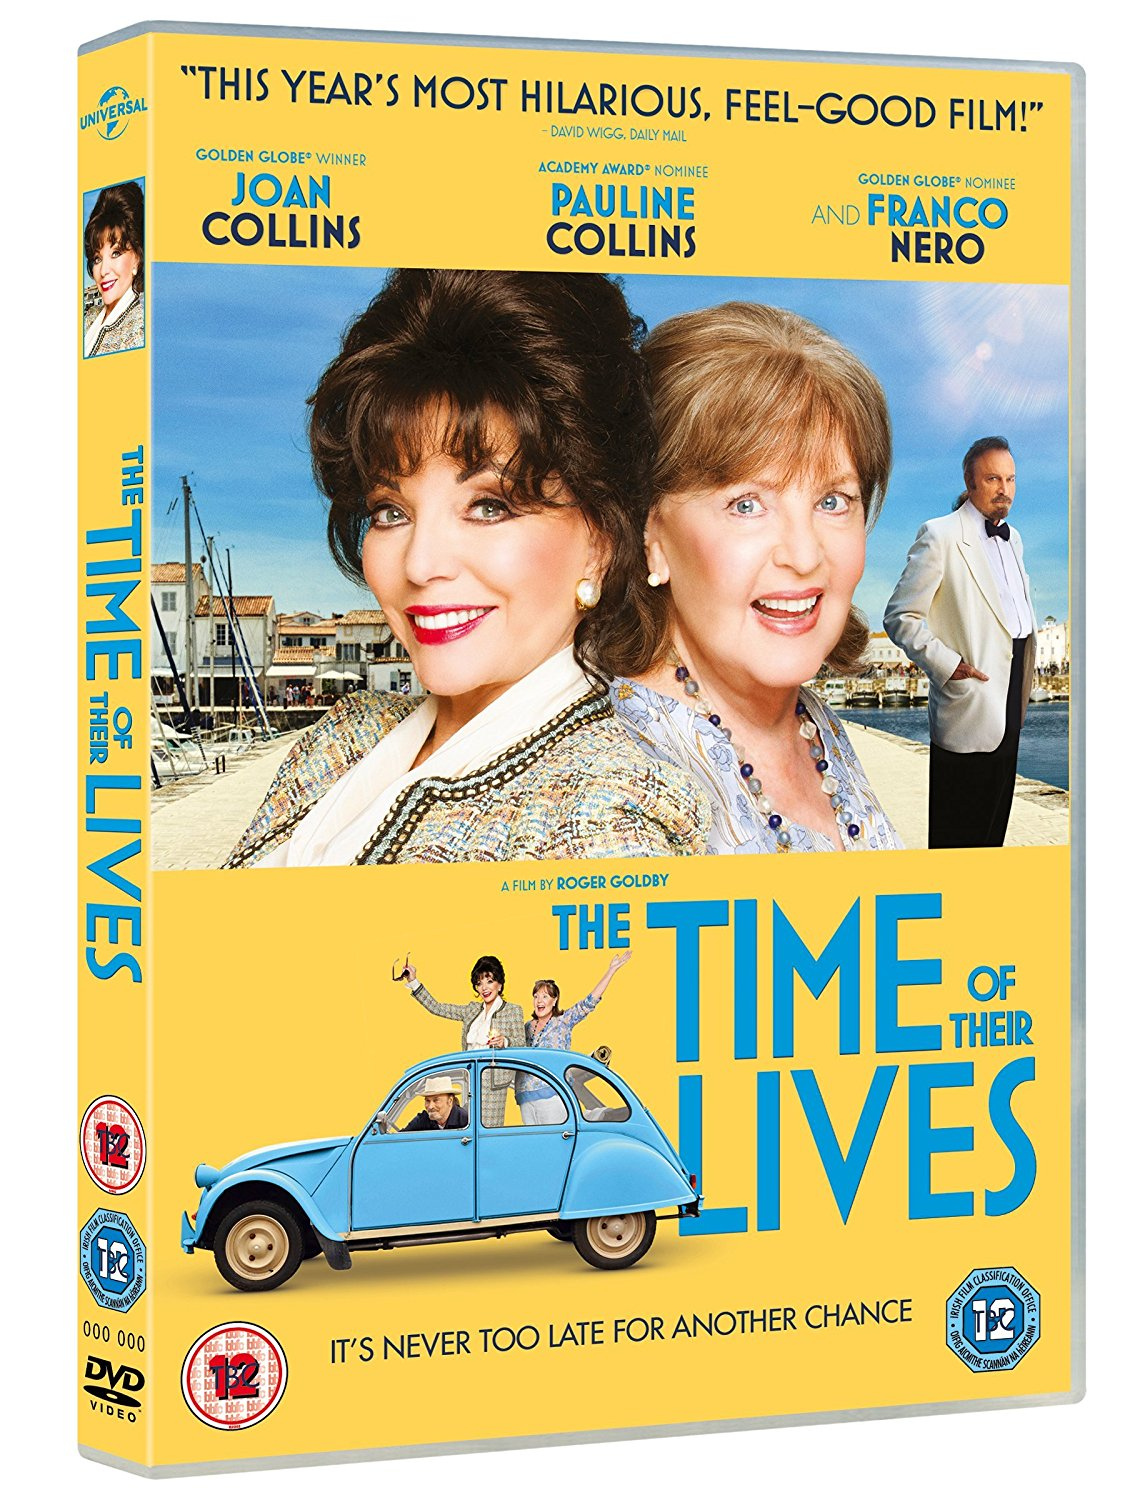 THE TIME OF THEIR LIVES DVD OUT NOW!